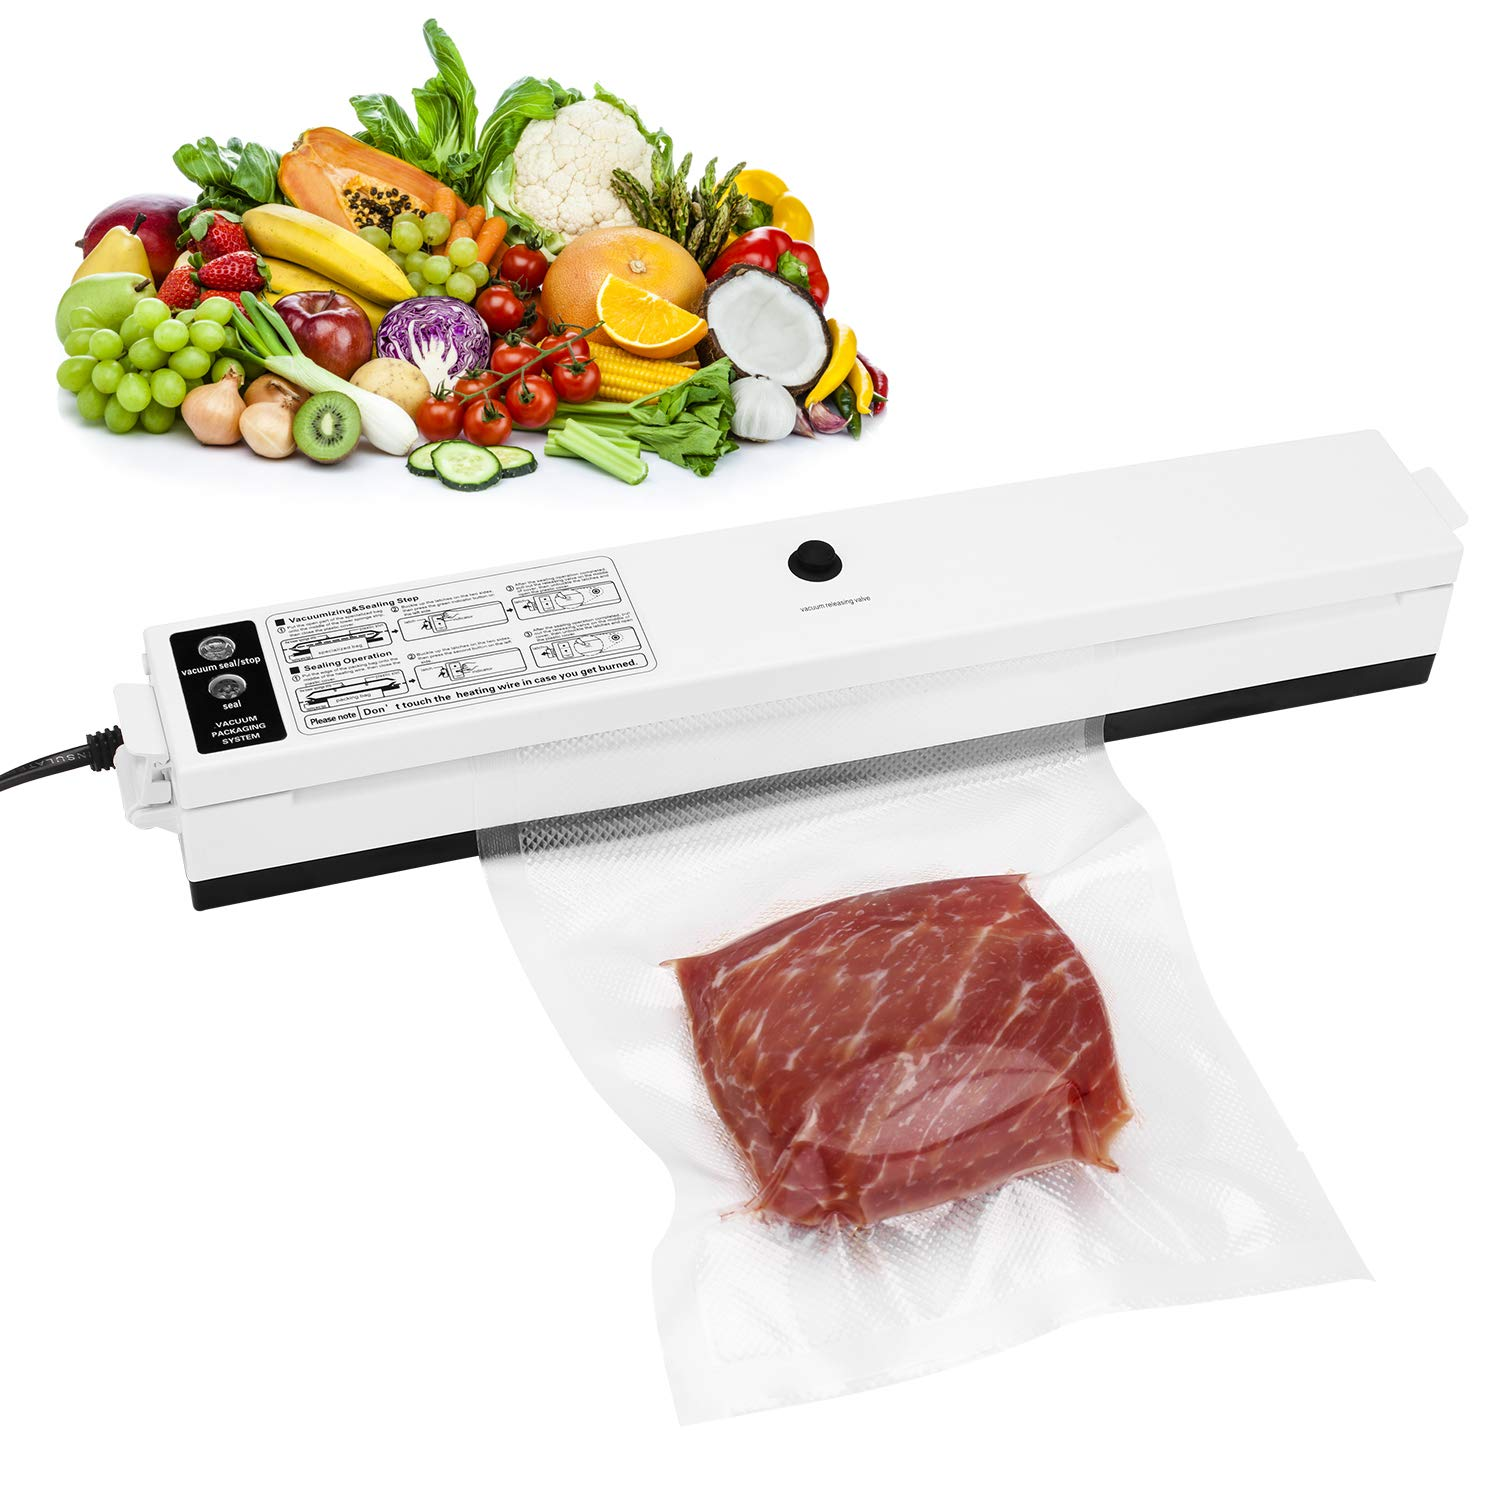 Vacuum Sealer, XBrands Food Sealer Machines One-button Vacuum Sealing System for Household Commercial Use of Food Preservation with Gift Vacuum Bag